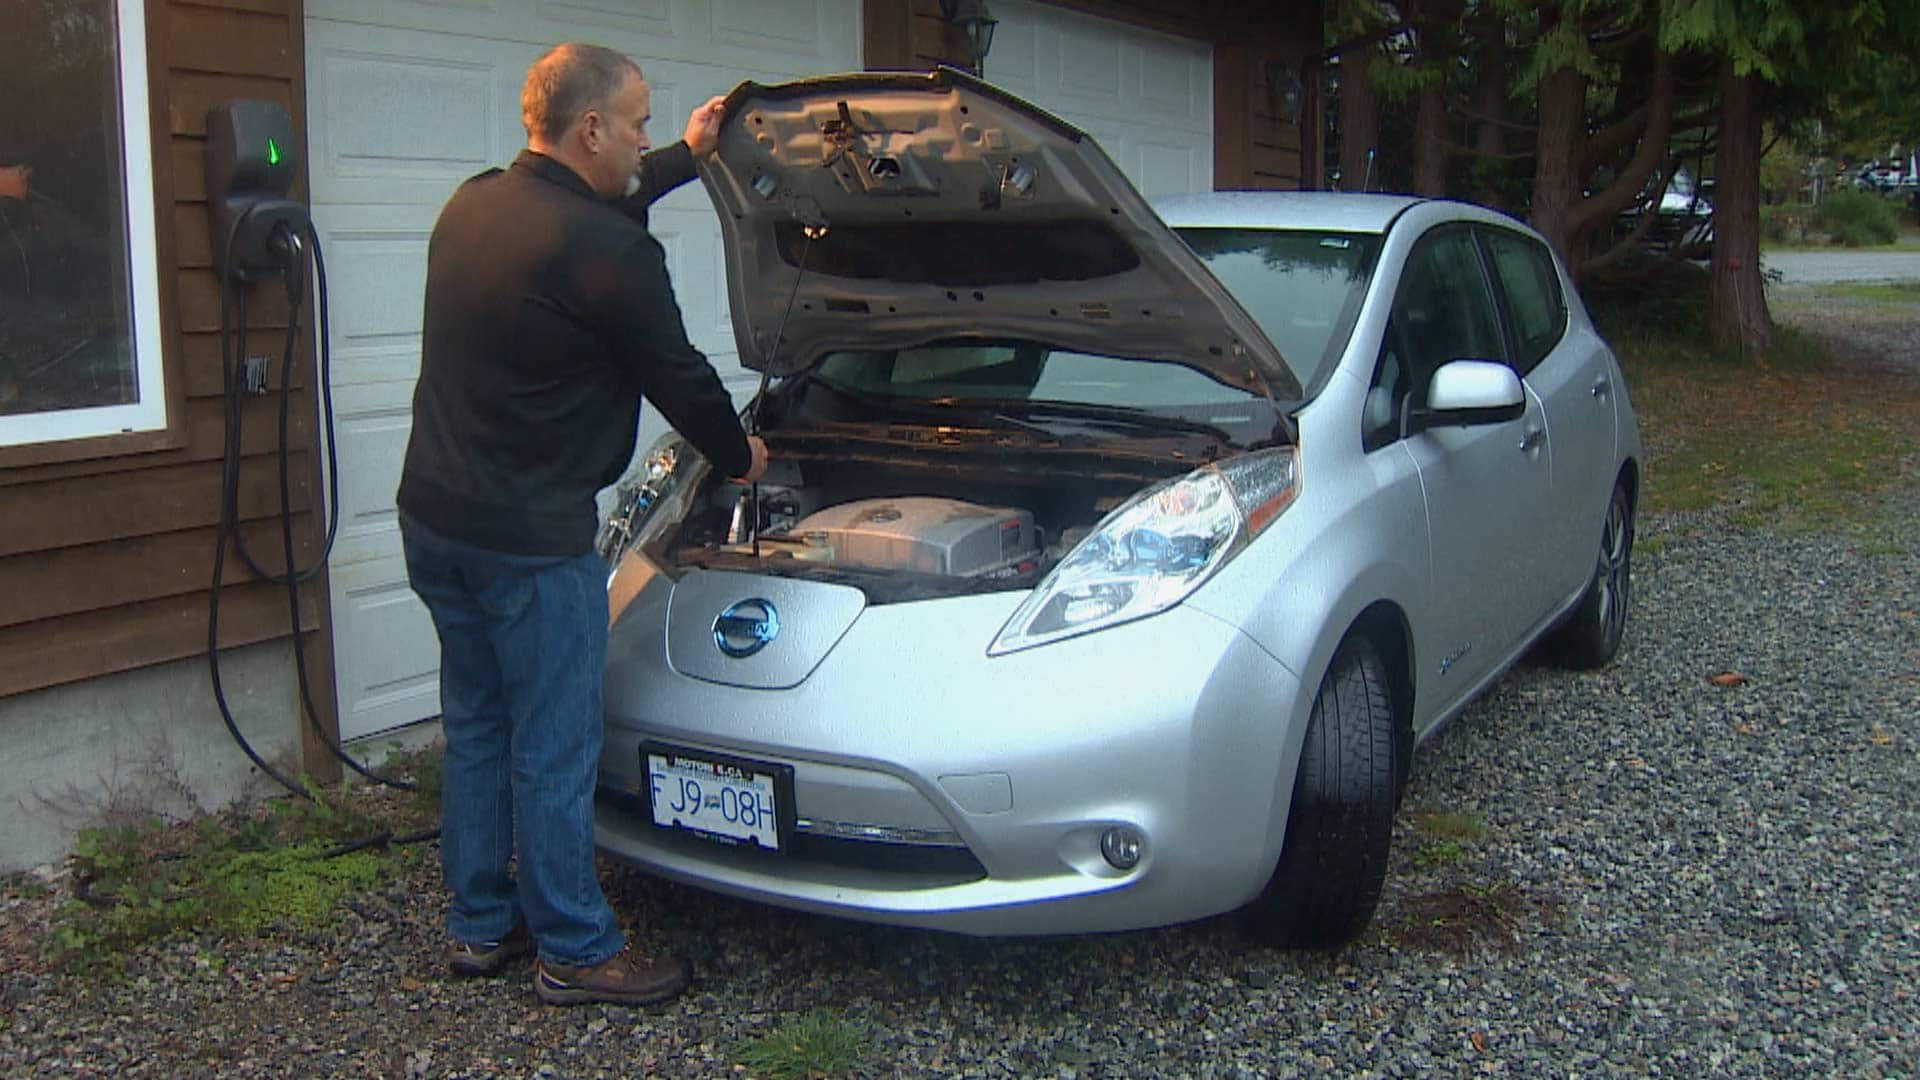 Owner of All all-electric Nissan Leaf frustrated by Problem of getting new battery thumbnail